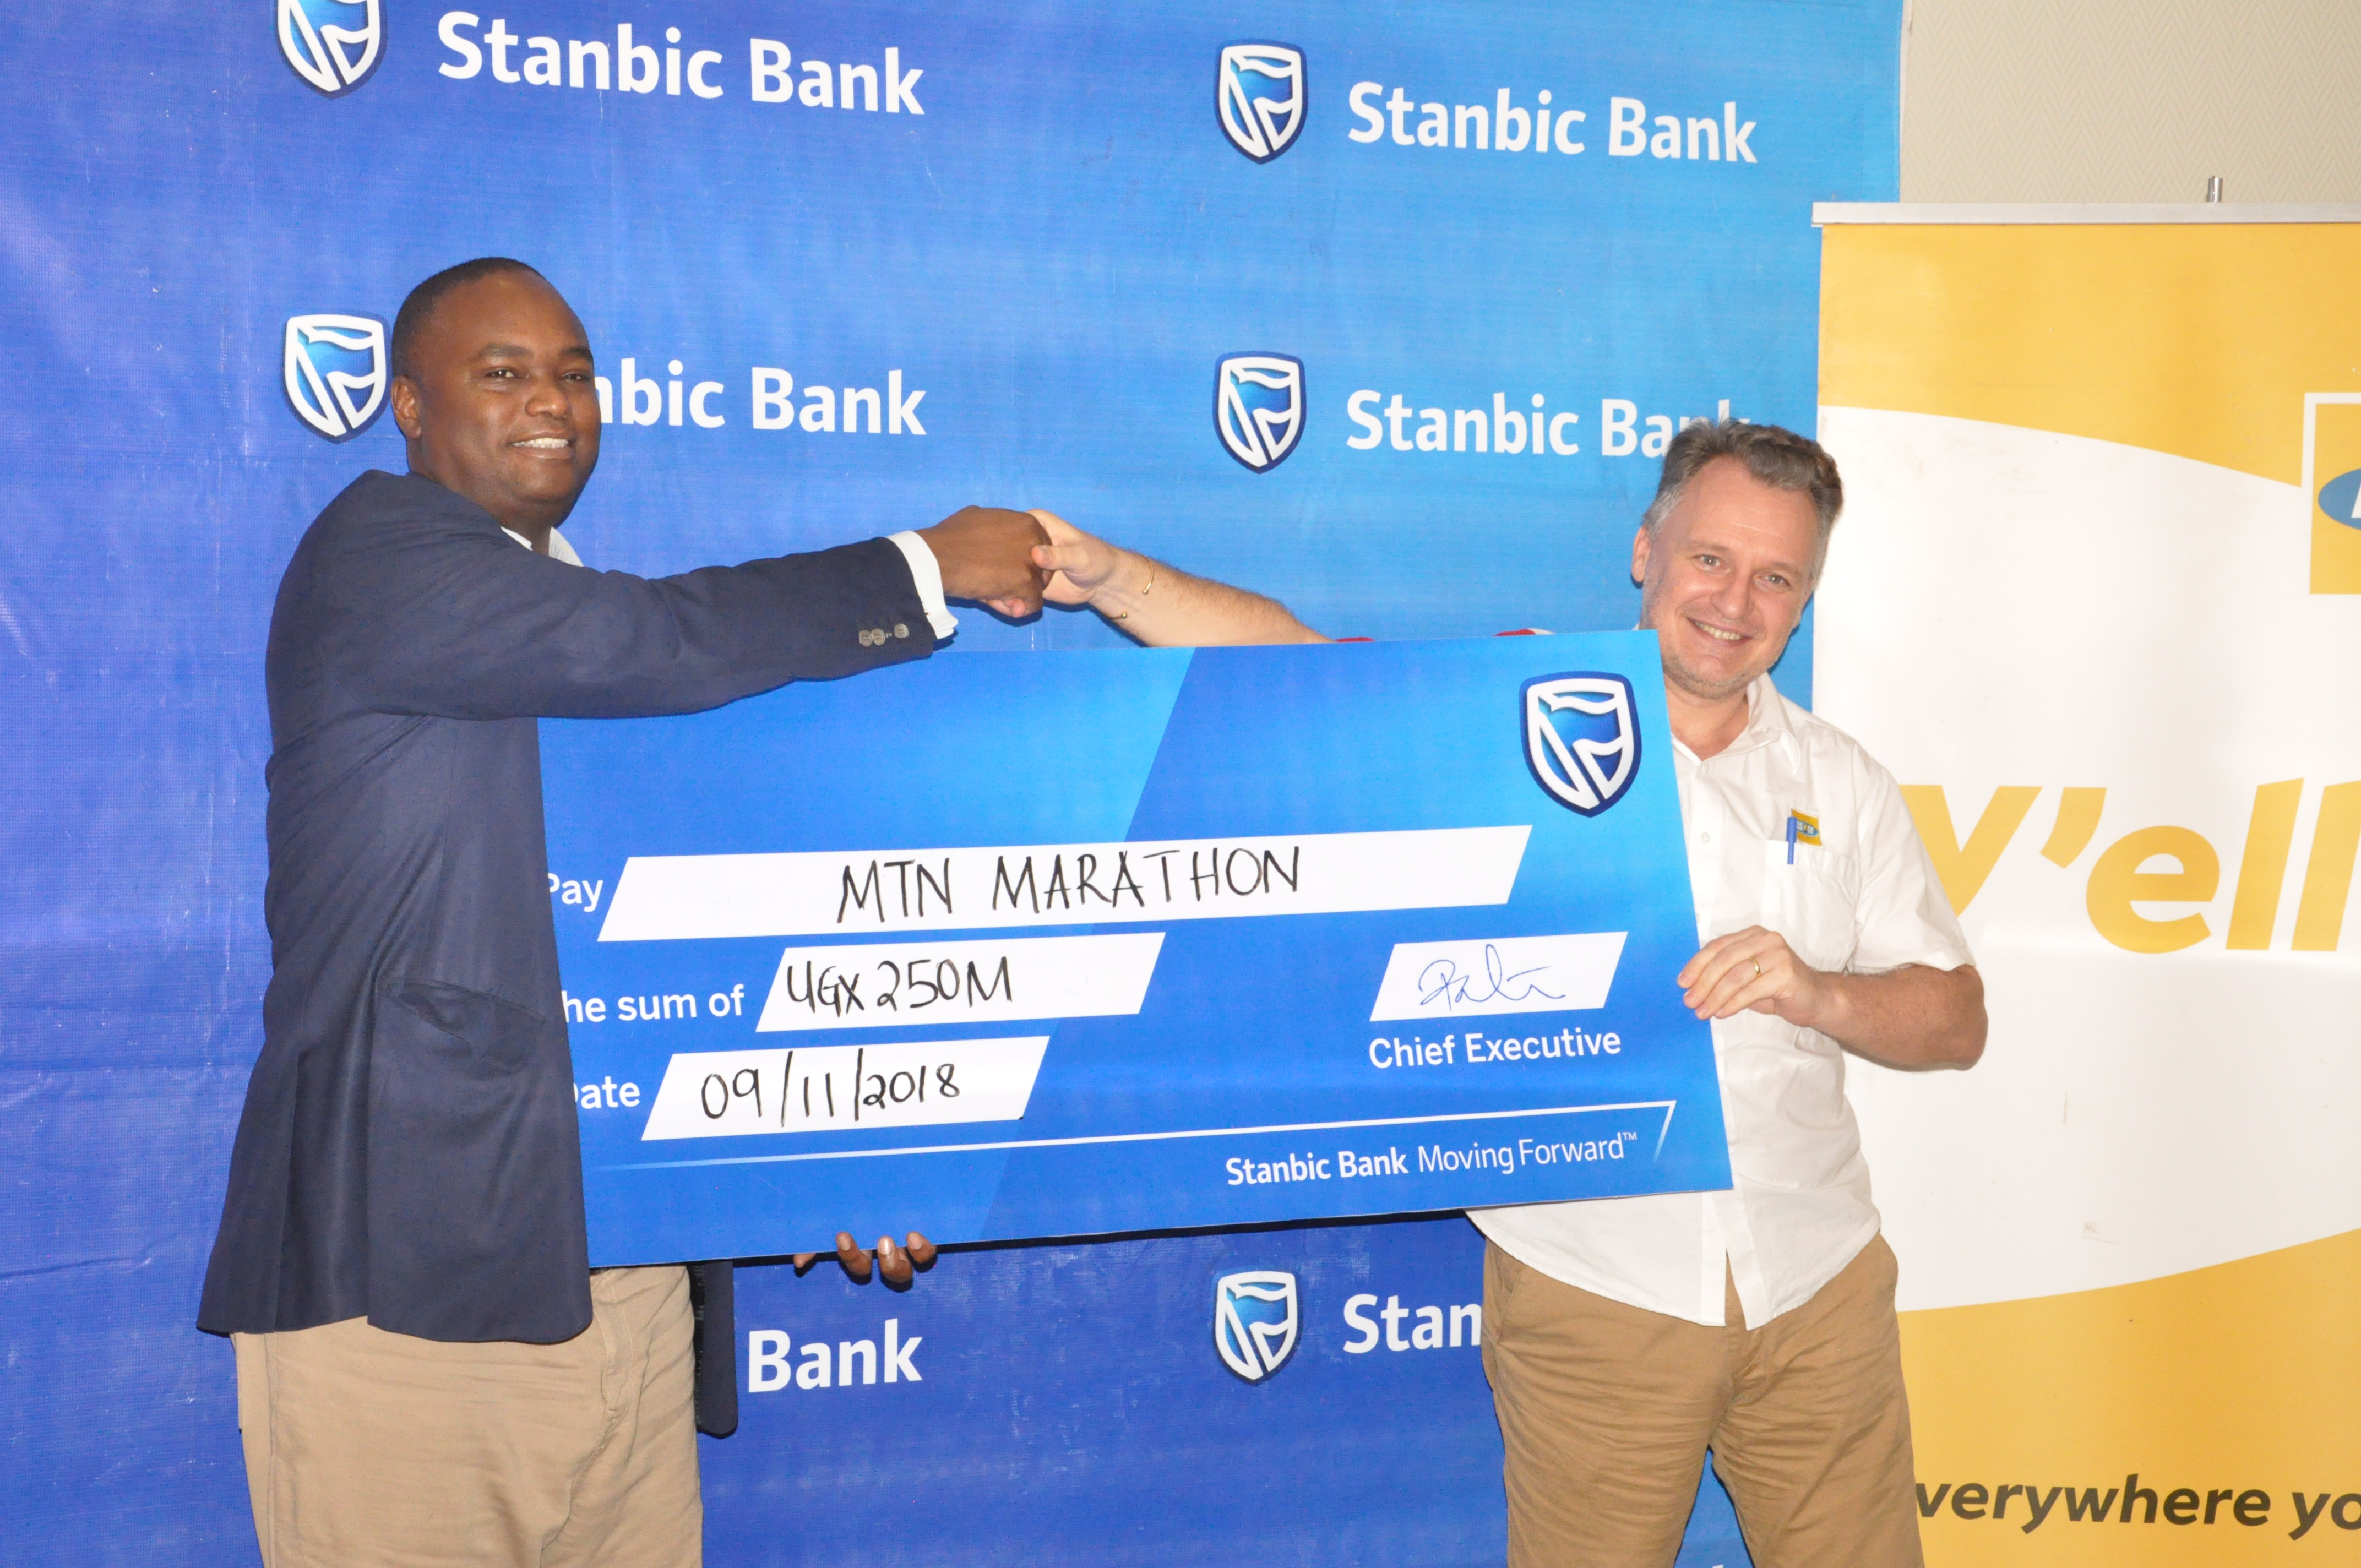 Patrick Mweheire, Stanbic Bank's CEO (L) hands over the banks contribution of UGX250M to MTN Uganda's CEO Mr. WimVanhelleputte. The contribution goes towards improving maternal health in Uganda.